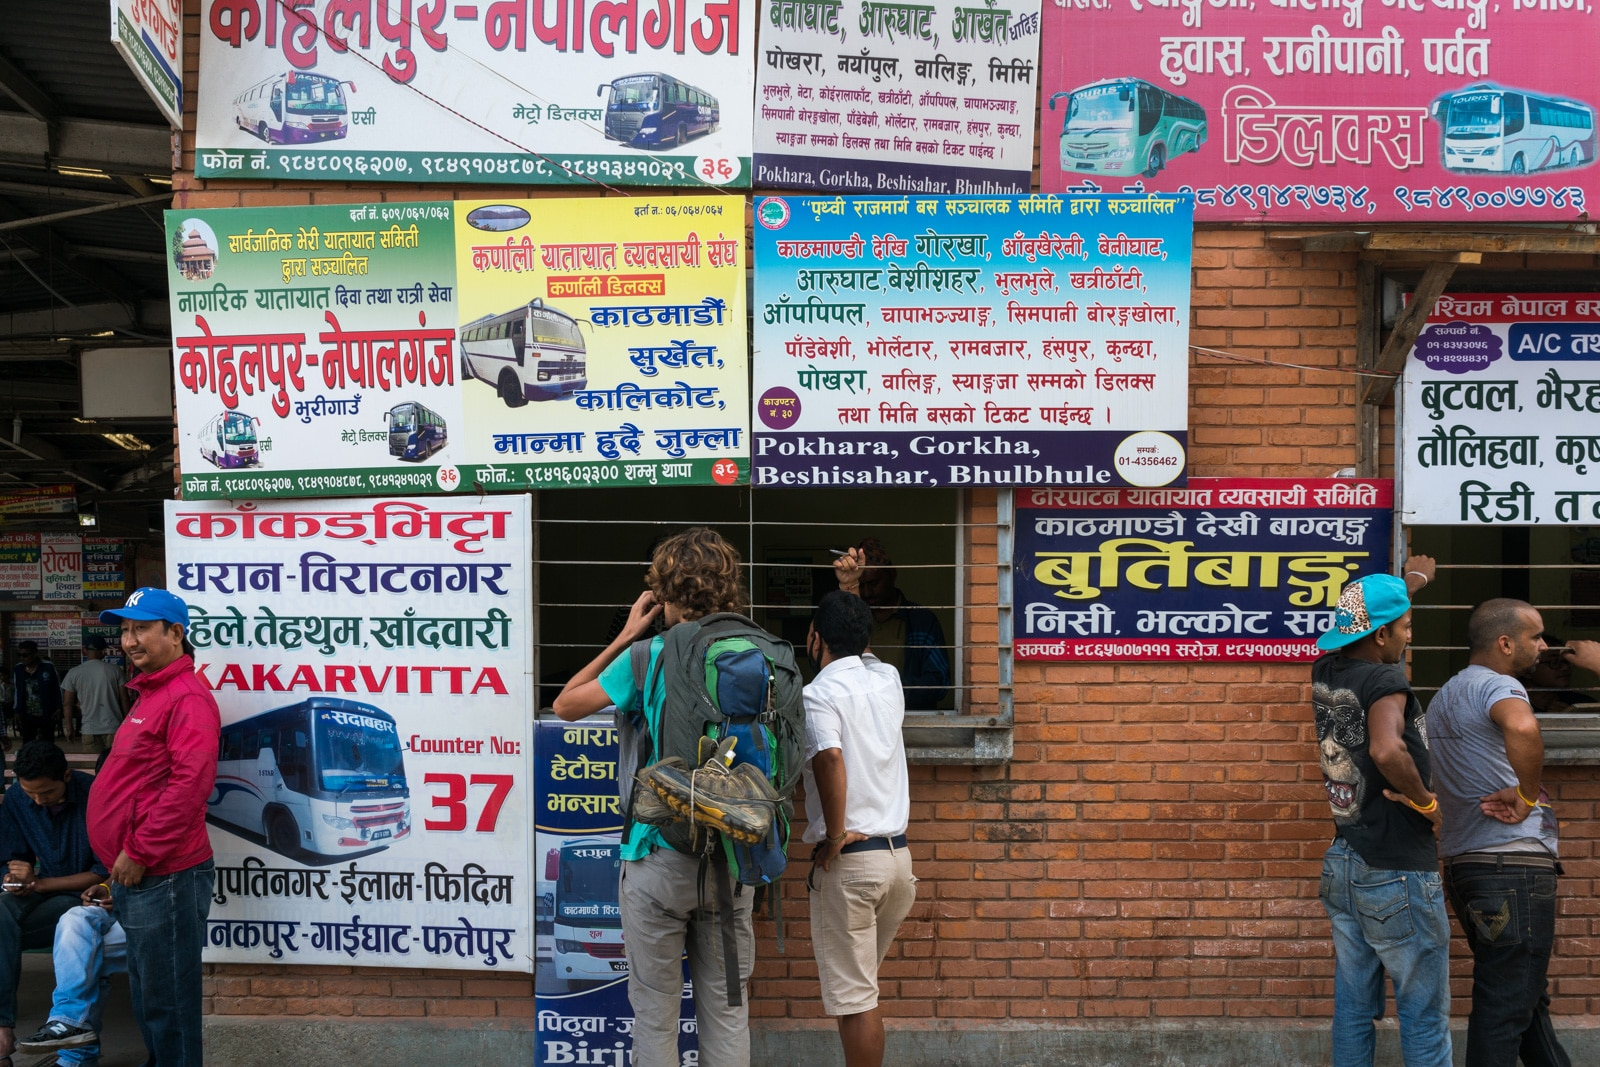 Nepal - India border crossing at Birganj and Raxaul - Ticket window at New Bus Park in Kathmandu - Lost With Purpose